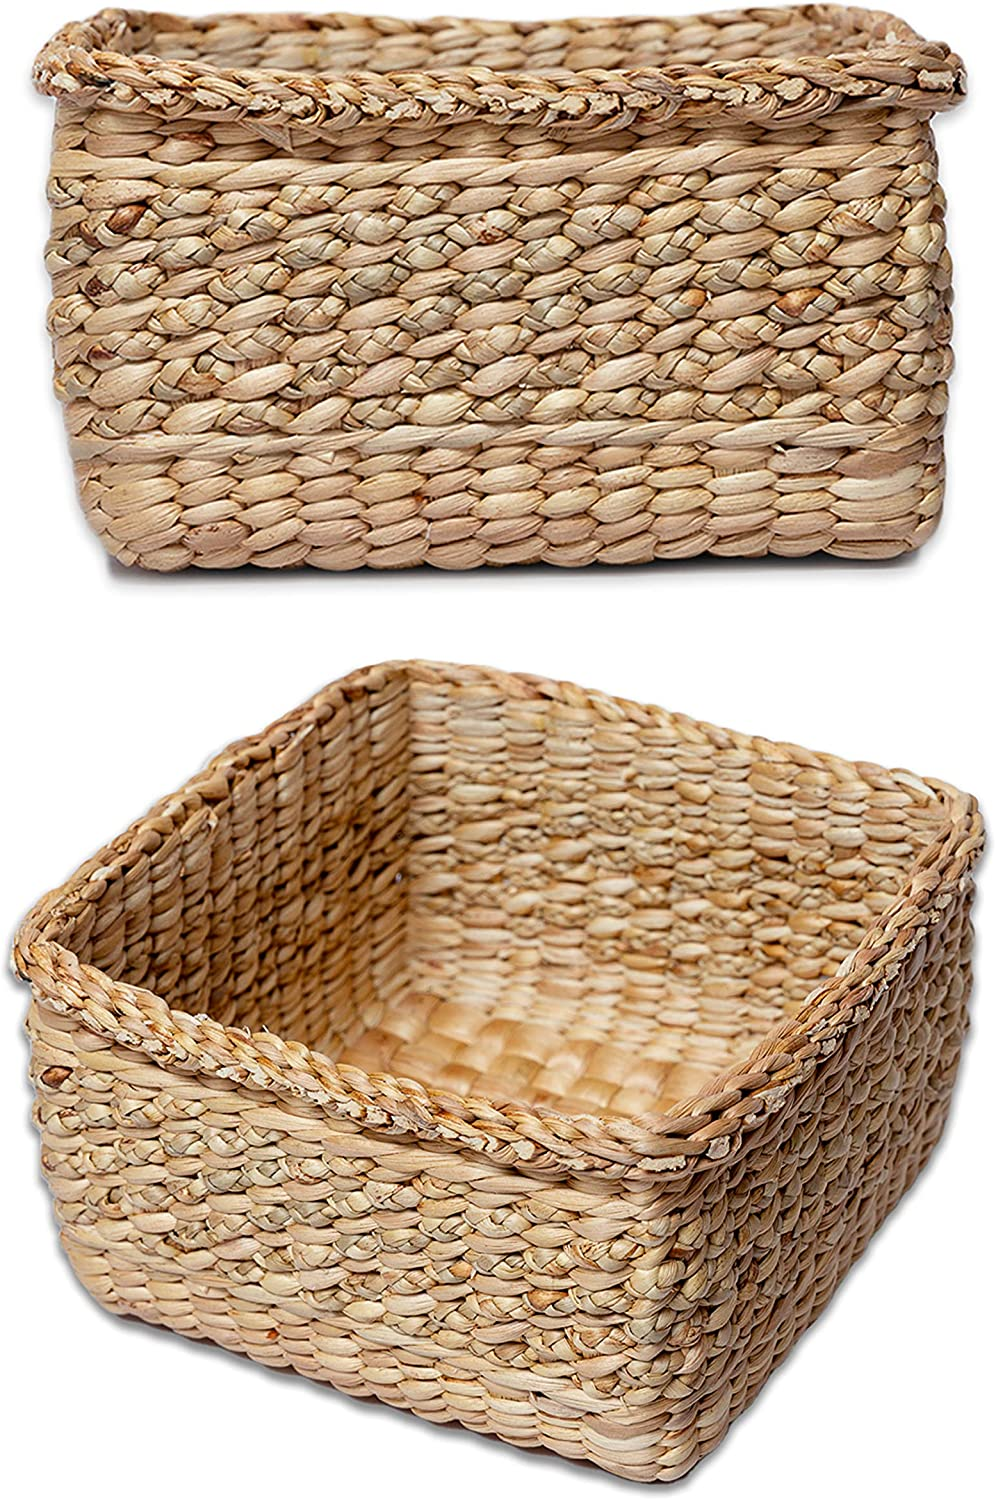 Nesar Hyacinth Water Wicker Storage Baskets Set for Organizing, Shelves and Home Decoration Set of 2 ( Medium & Small)